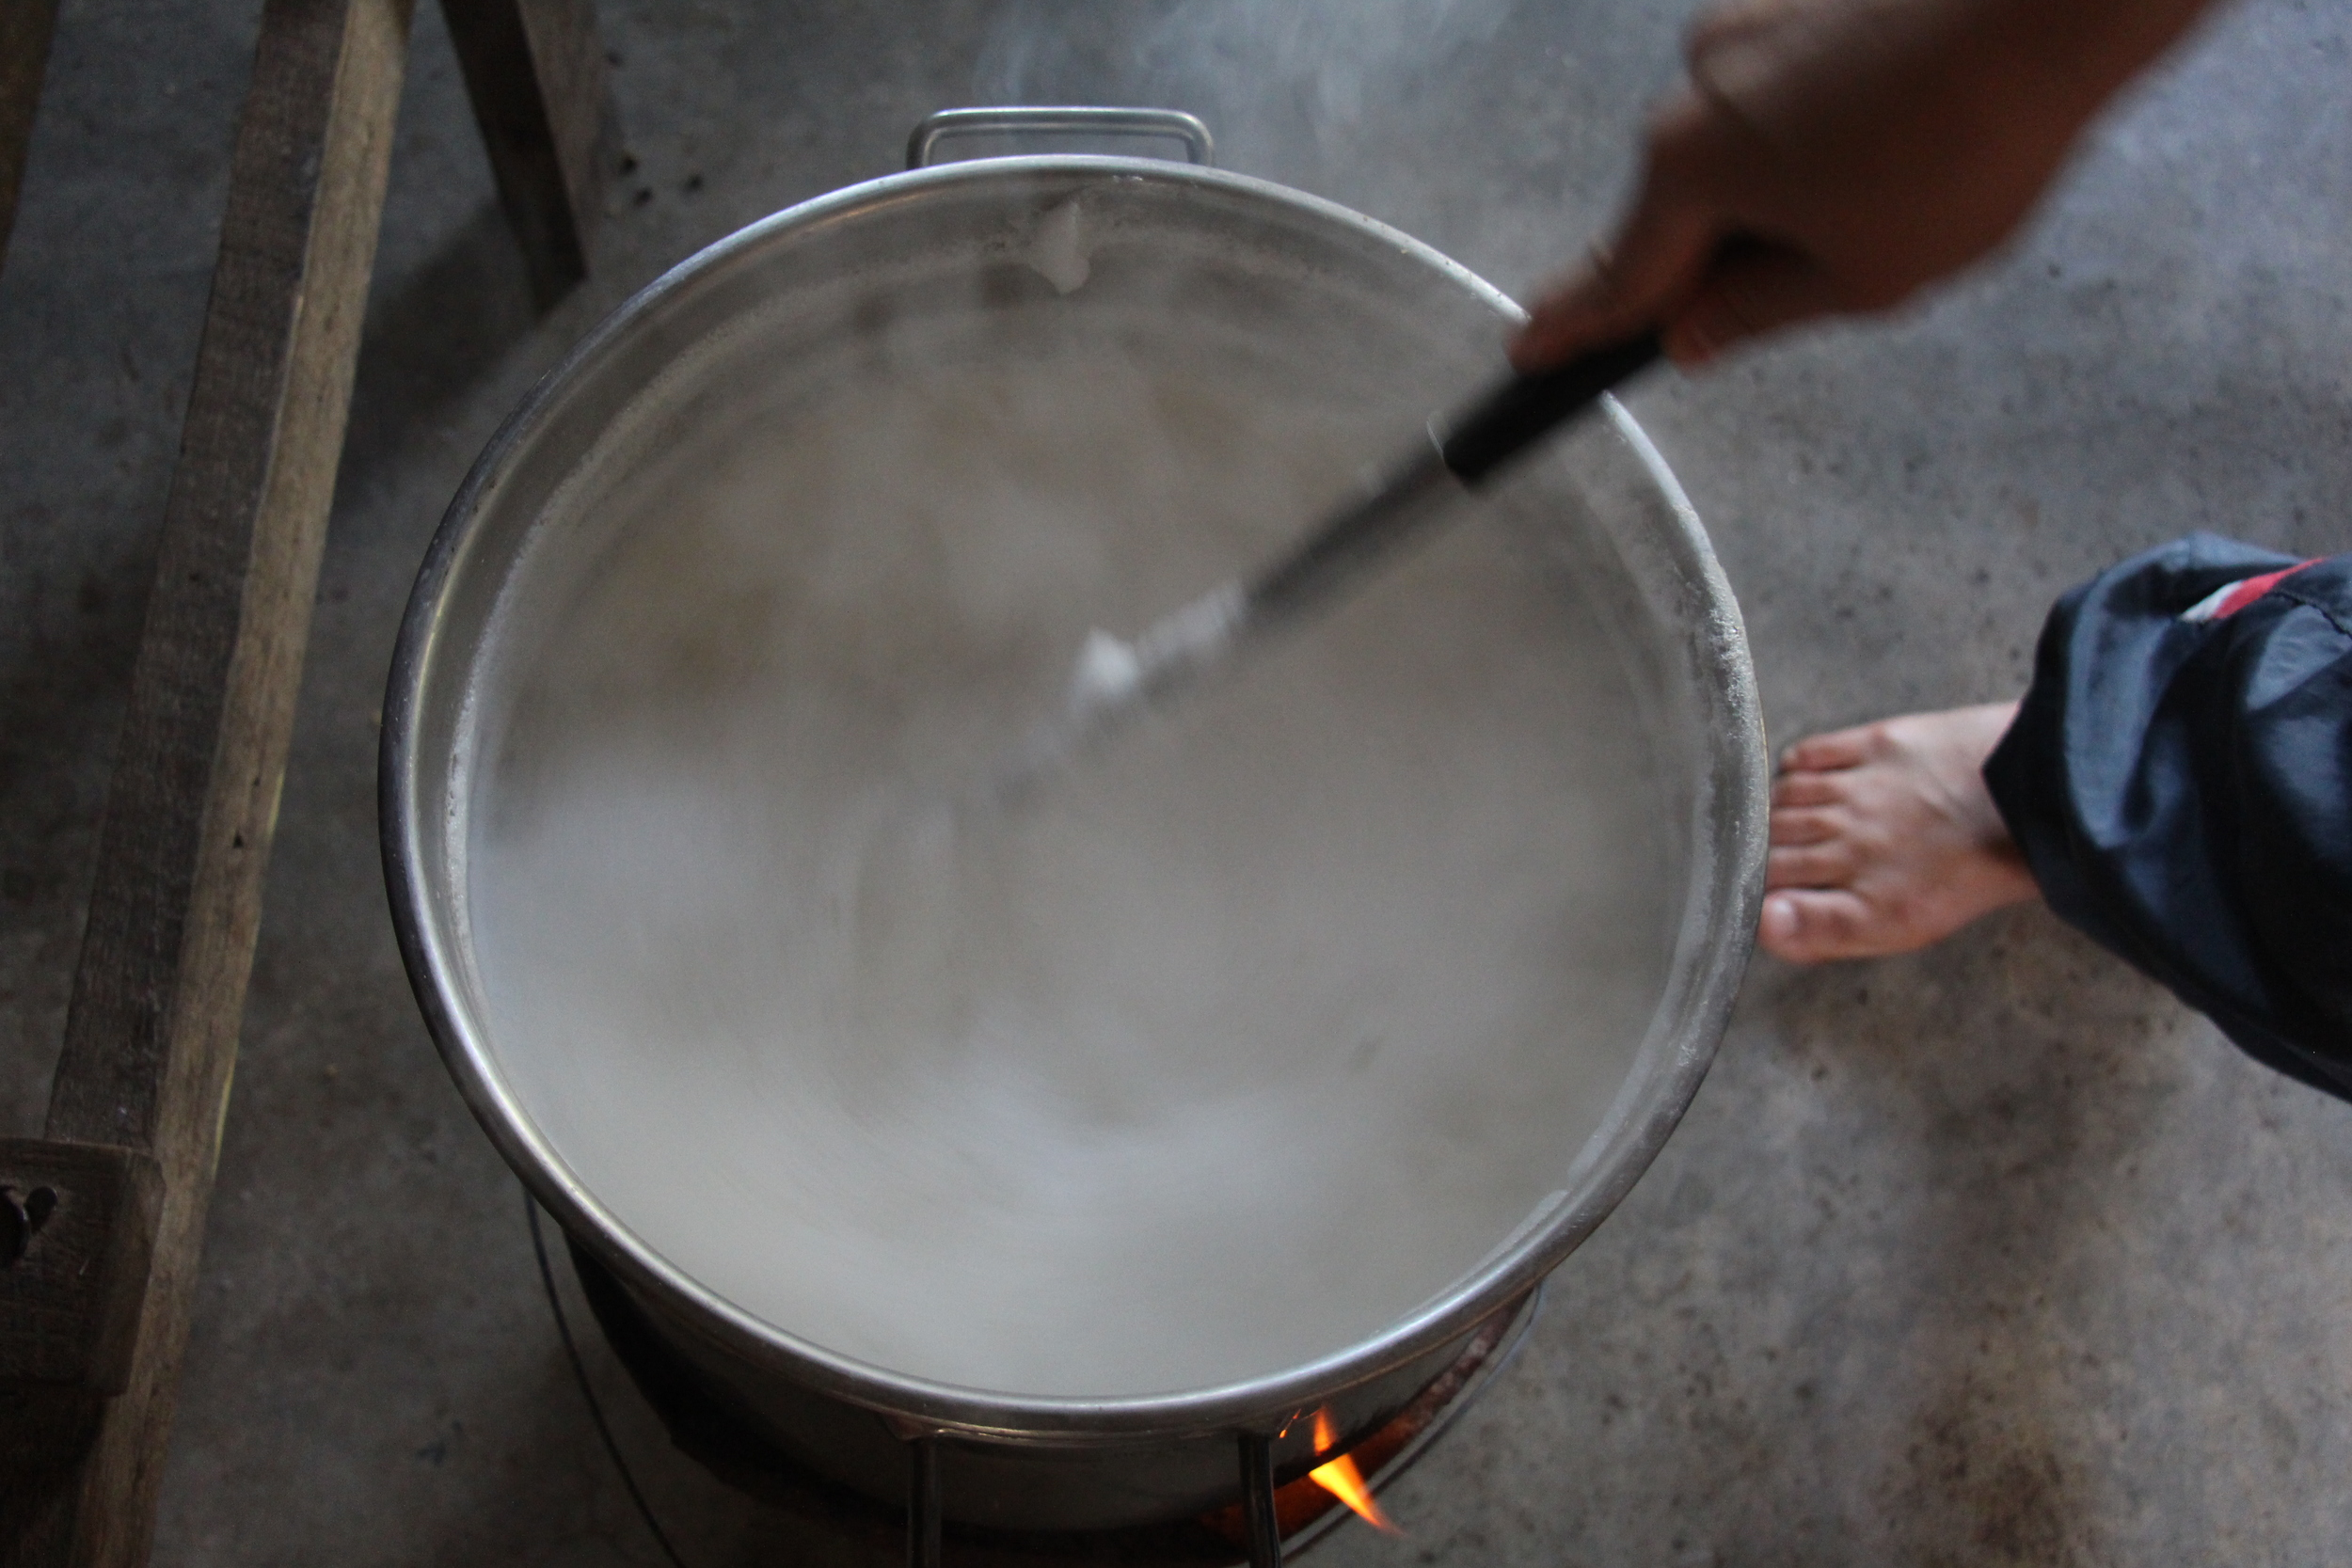 Cooking the soy milk